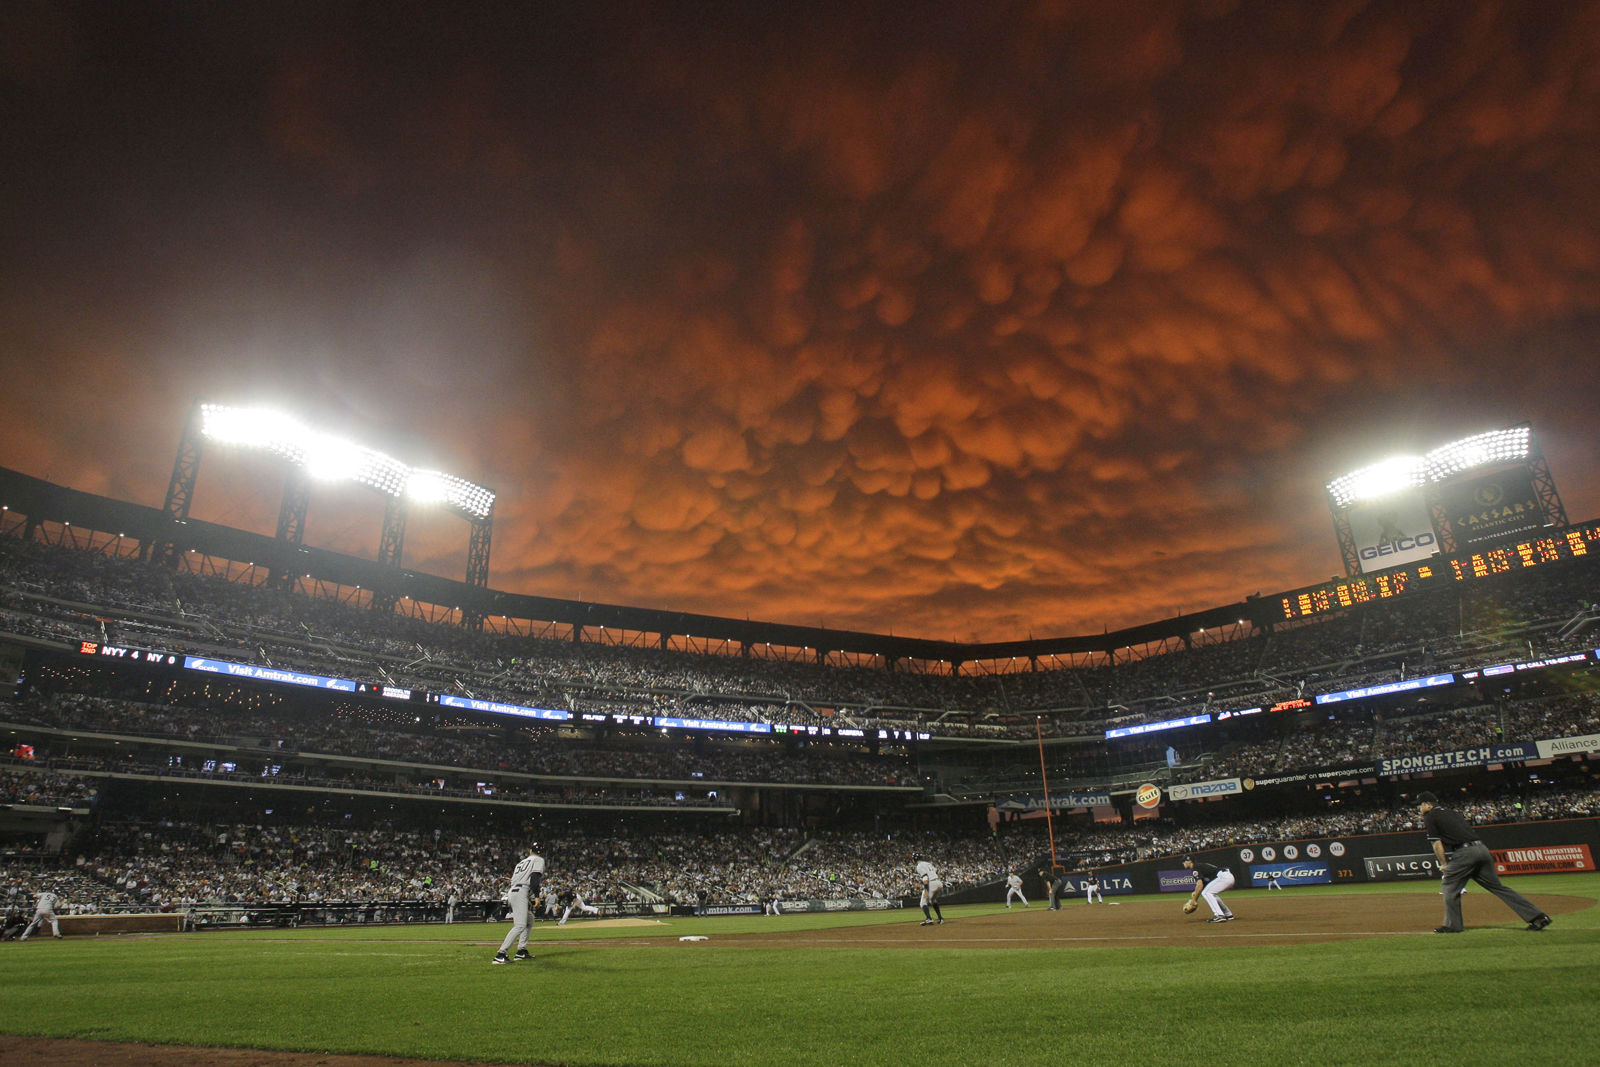 You can step right up and meet the Mets for an average cost of $83.67. That puts Citi Field at No. 4 on the list. File. (AP Photo/Frank Franklin II)